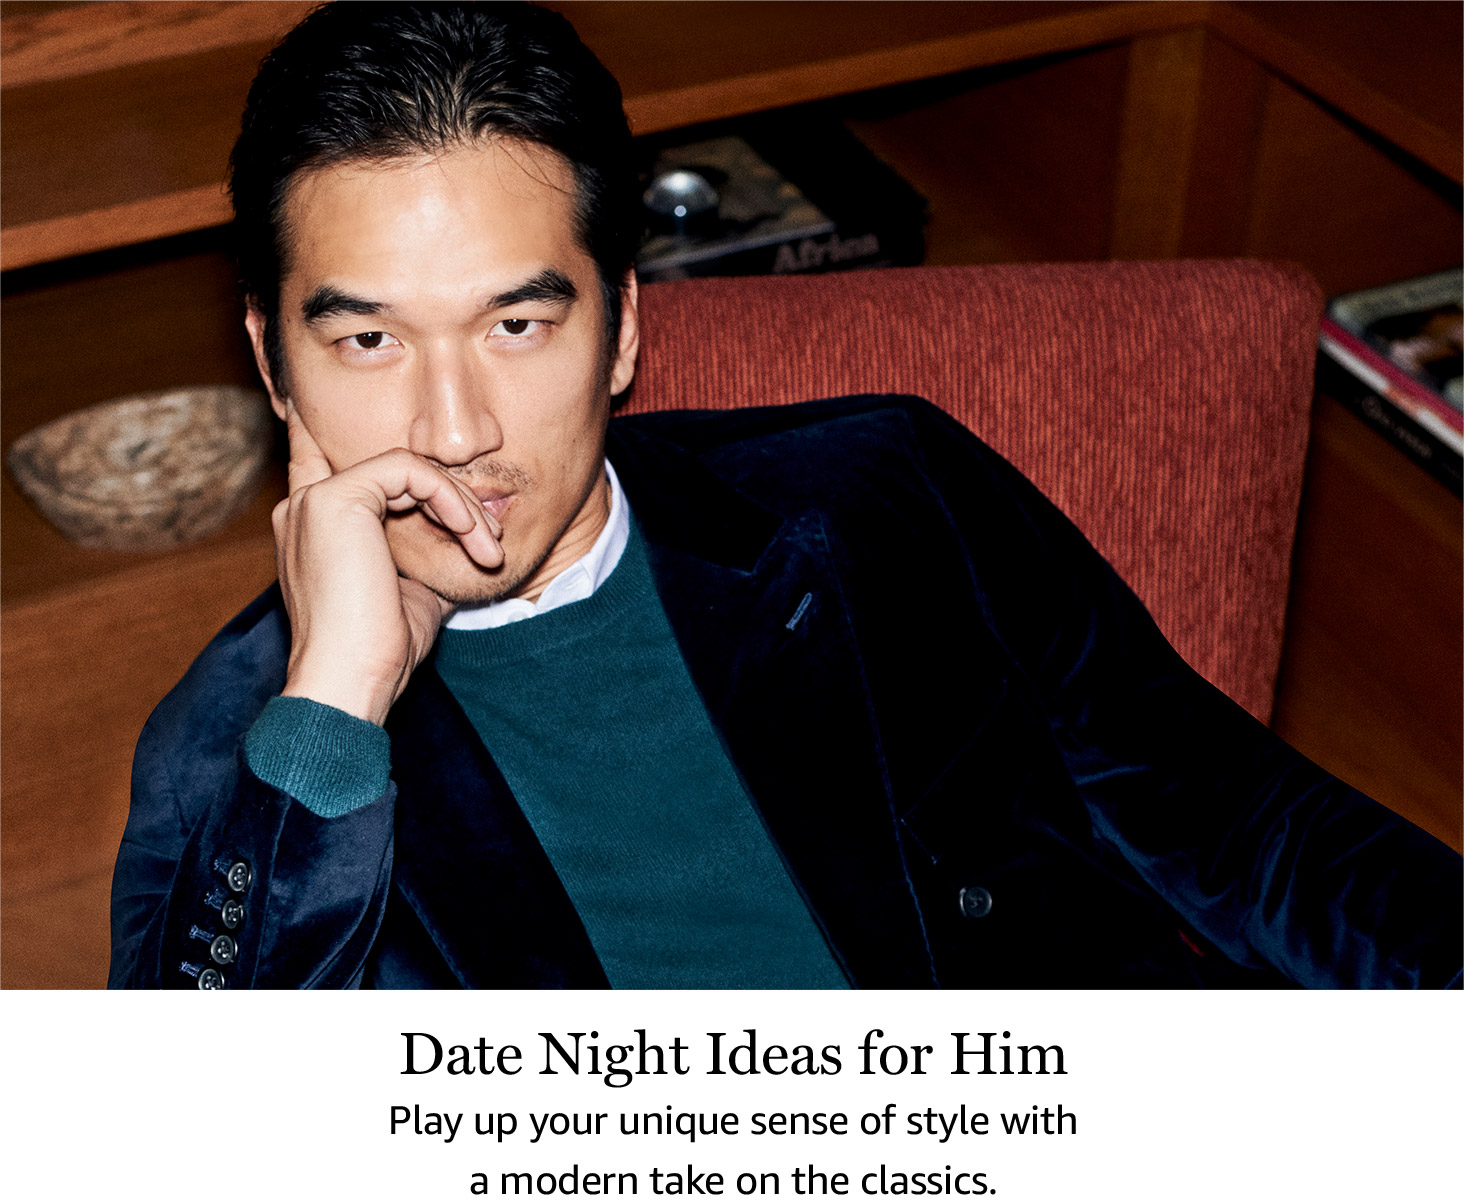 Date Night Ideas for Him